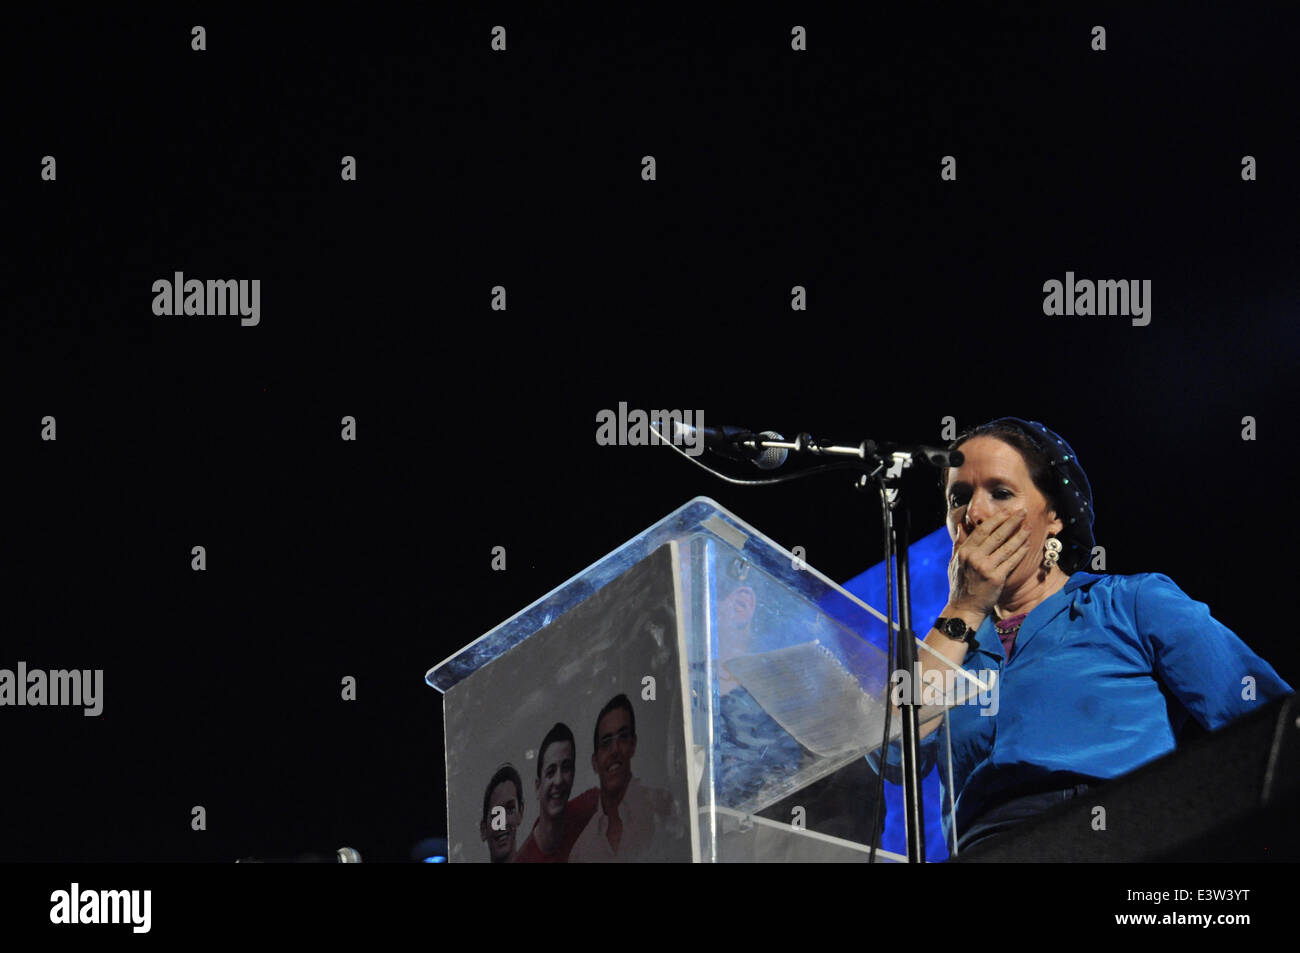 TEL AVIV, ISRAEL - June 29. The mother of one of the kidnapped boys has a moment of commotion on stage during a - Stock Image